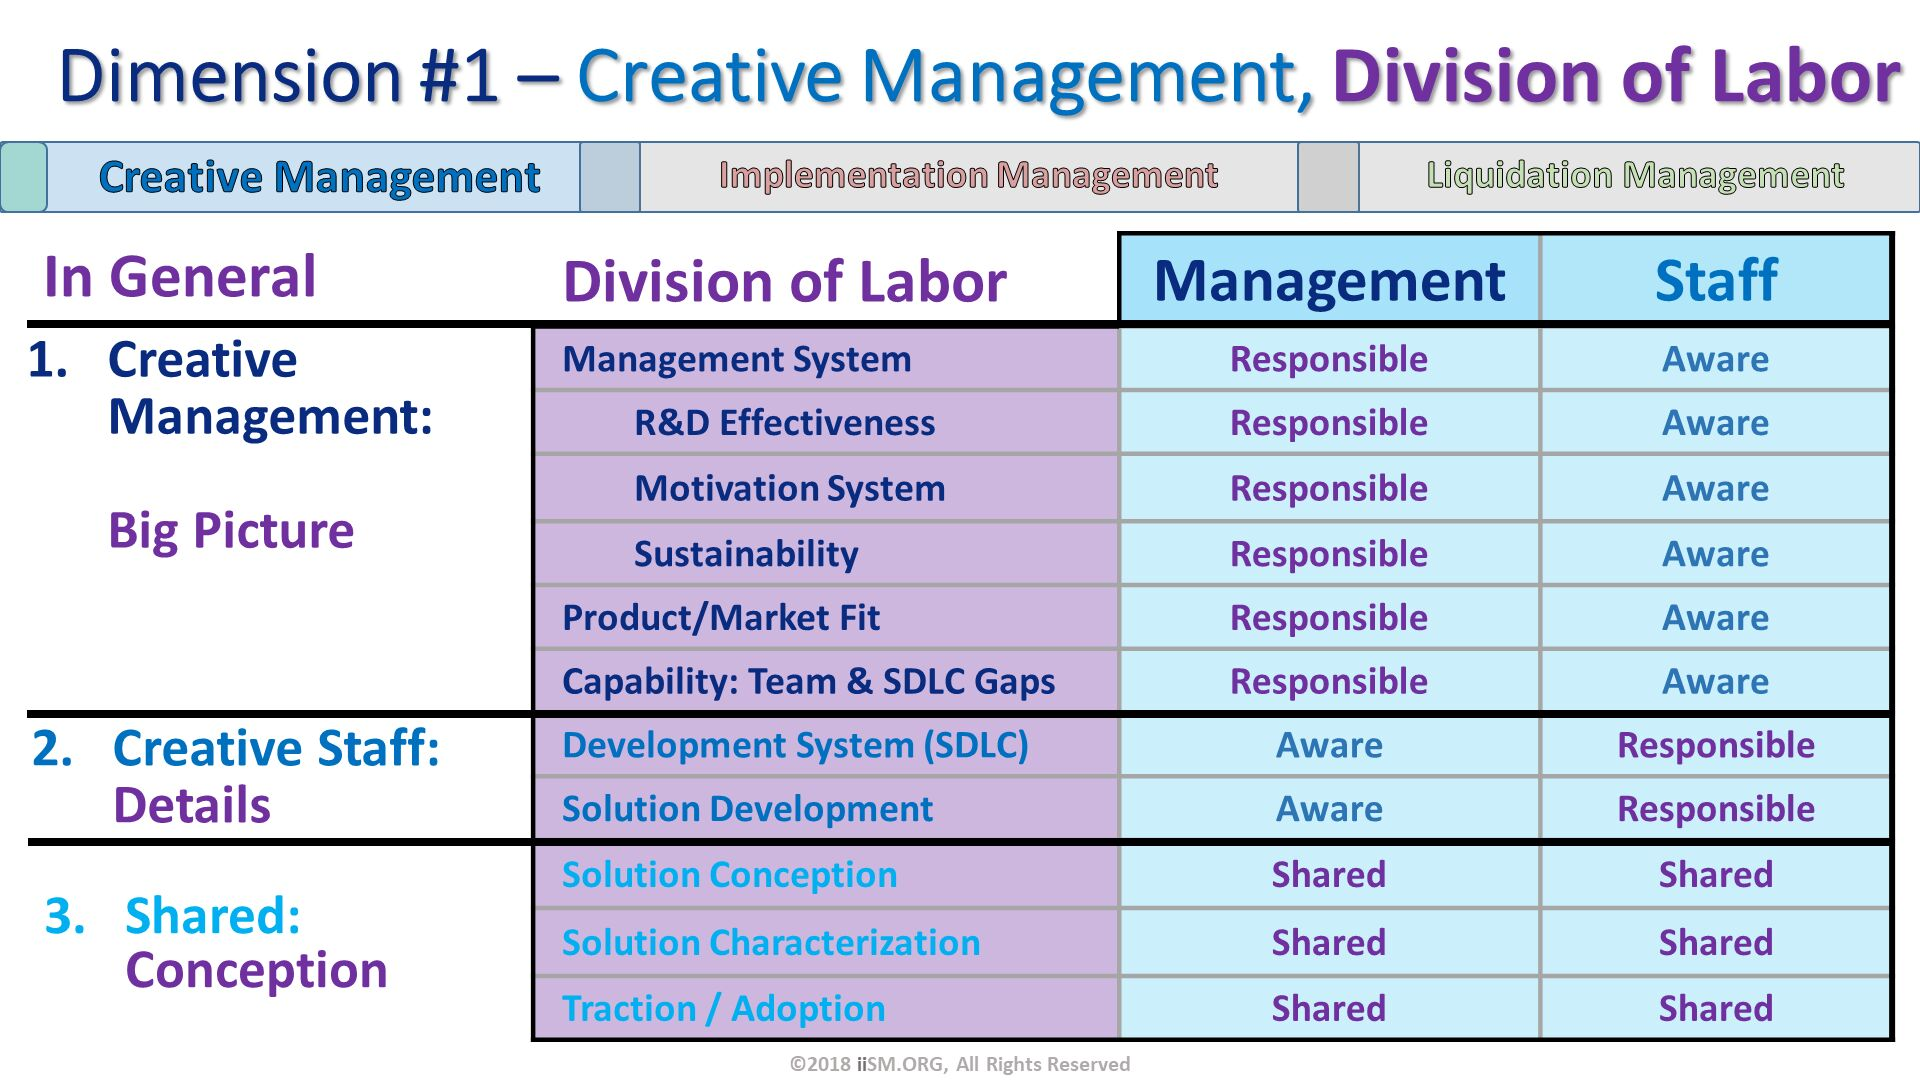 Dimension #1 – Creative Management, Division of Labor. Creative Management:Big Picture. Creative Staff: Details. Shared: Conception. In General. ©2018 iiSM.ORG, All Rights Reserved.